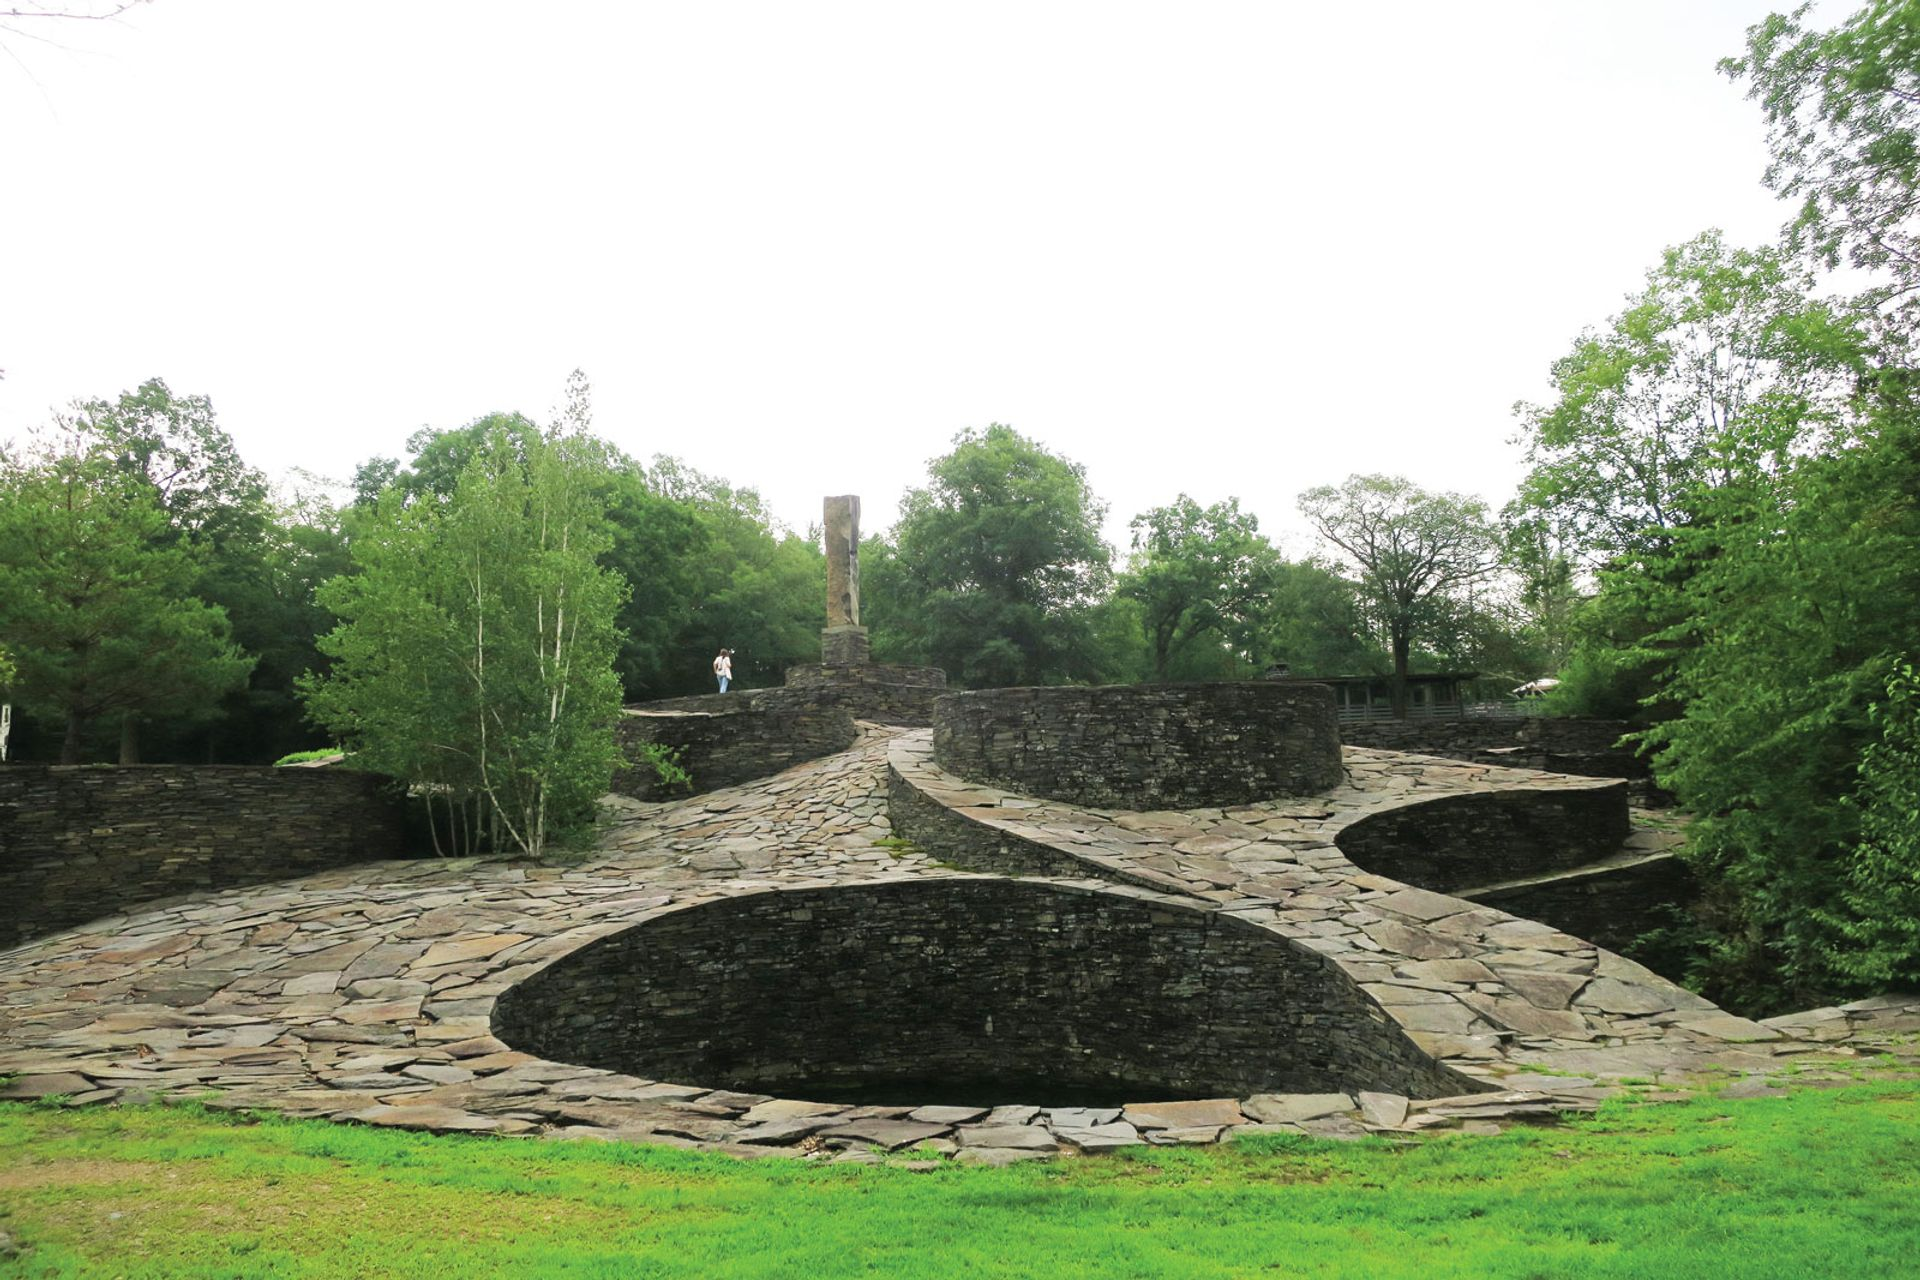 Harvey Fite set about hand placing stones at Opus 40, weaving them together like a jigsaw puzzle that rises into an undulating, built landscape Photo: Manuela Michailescu